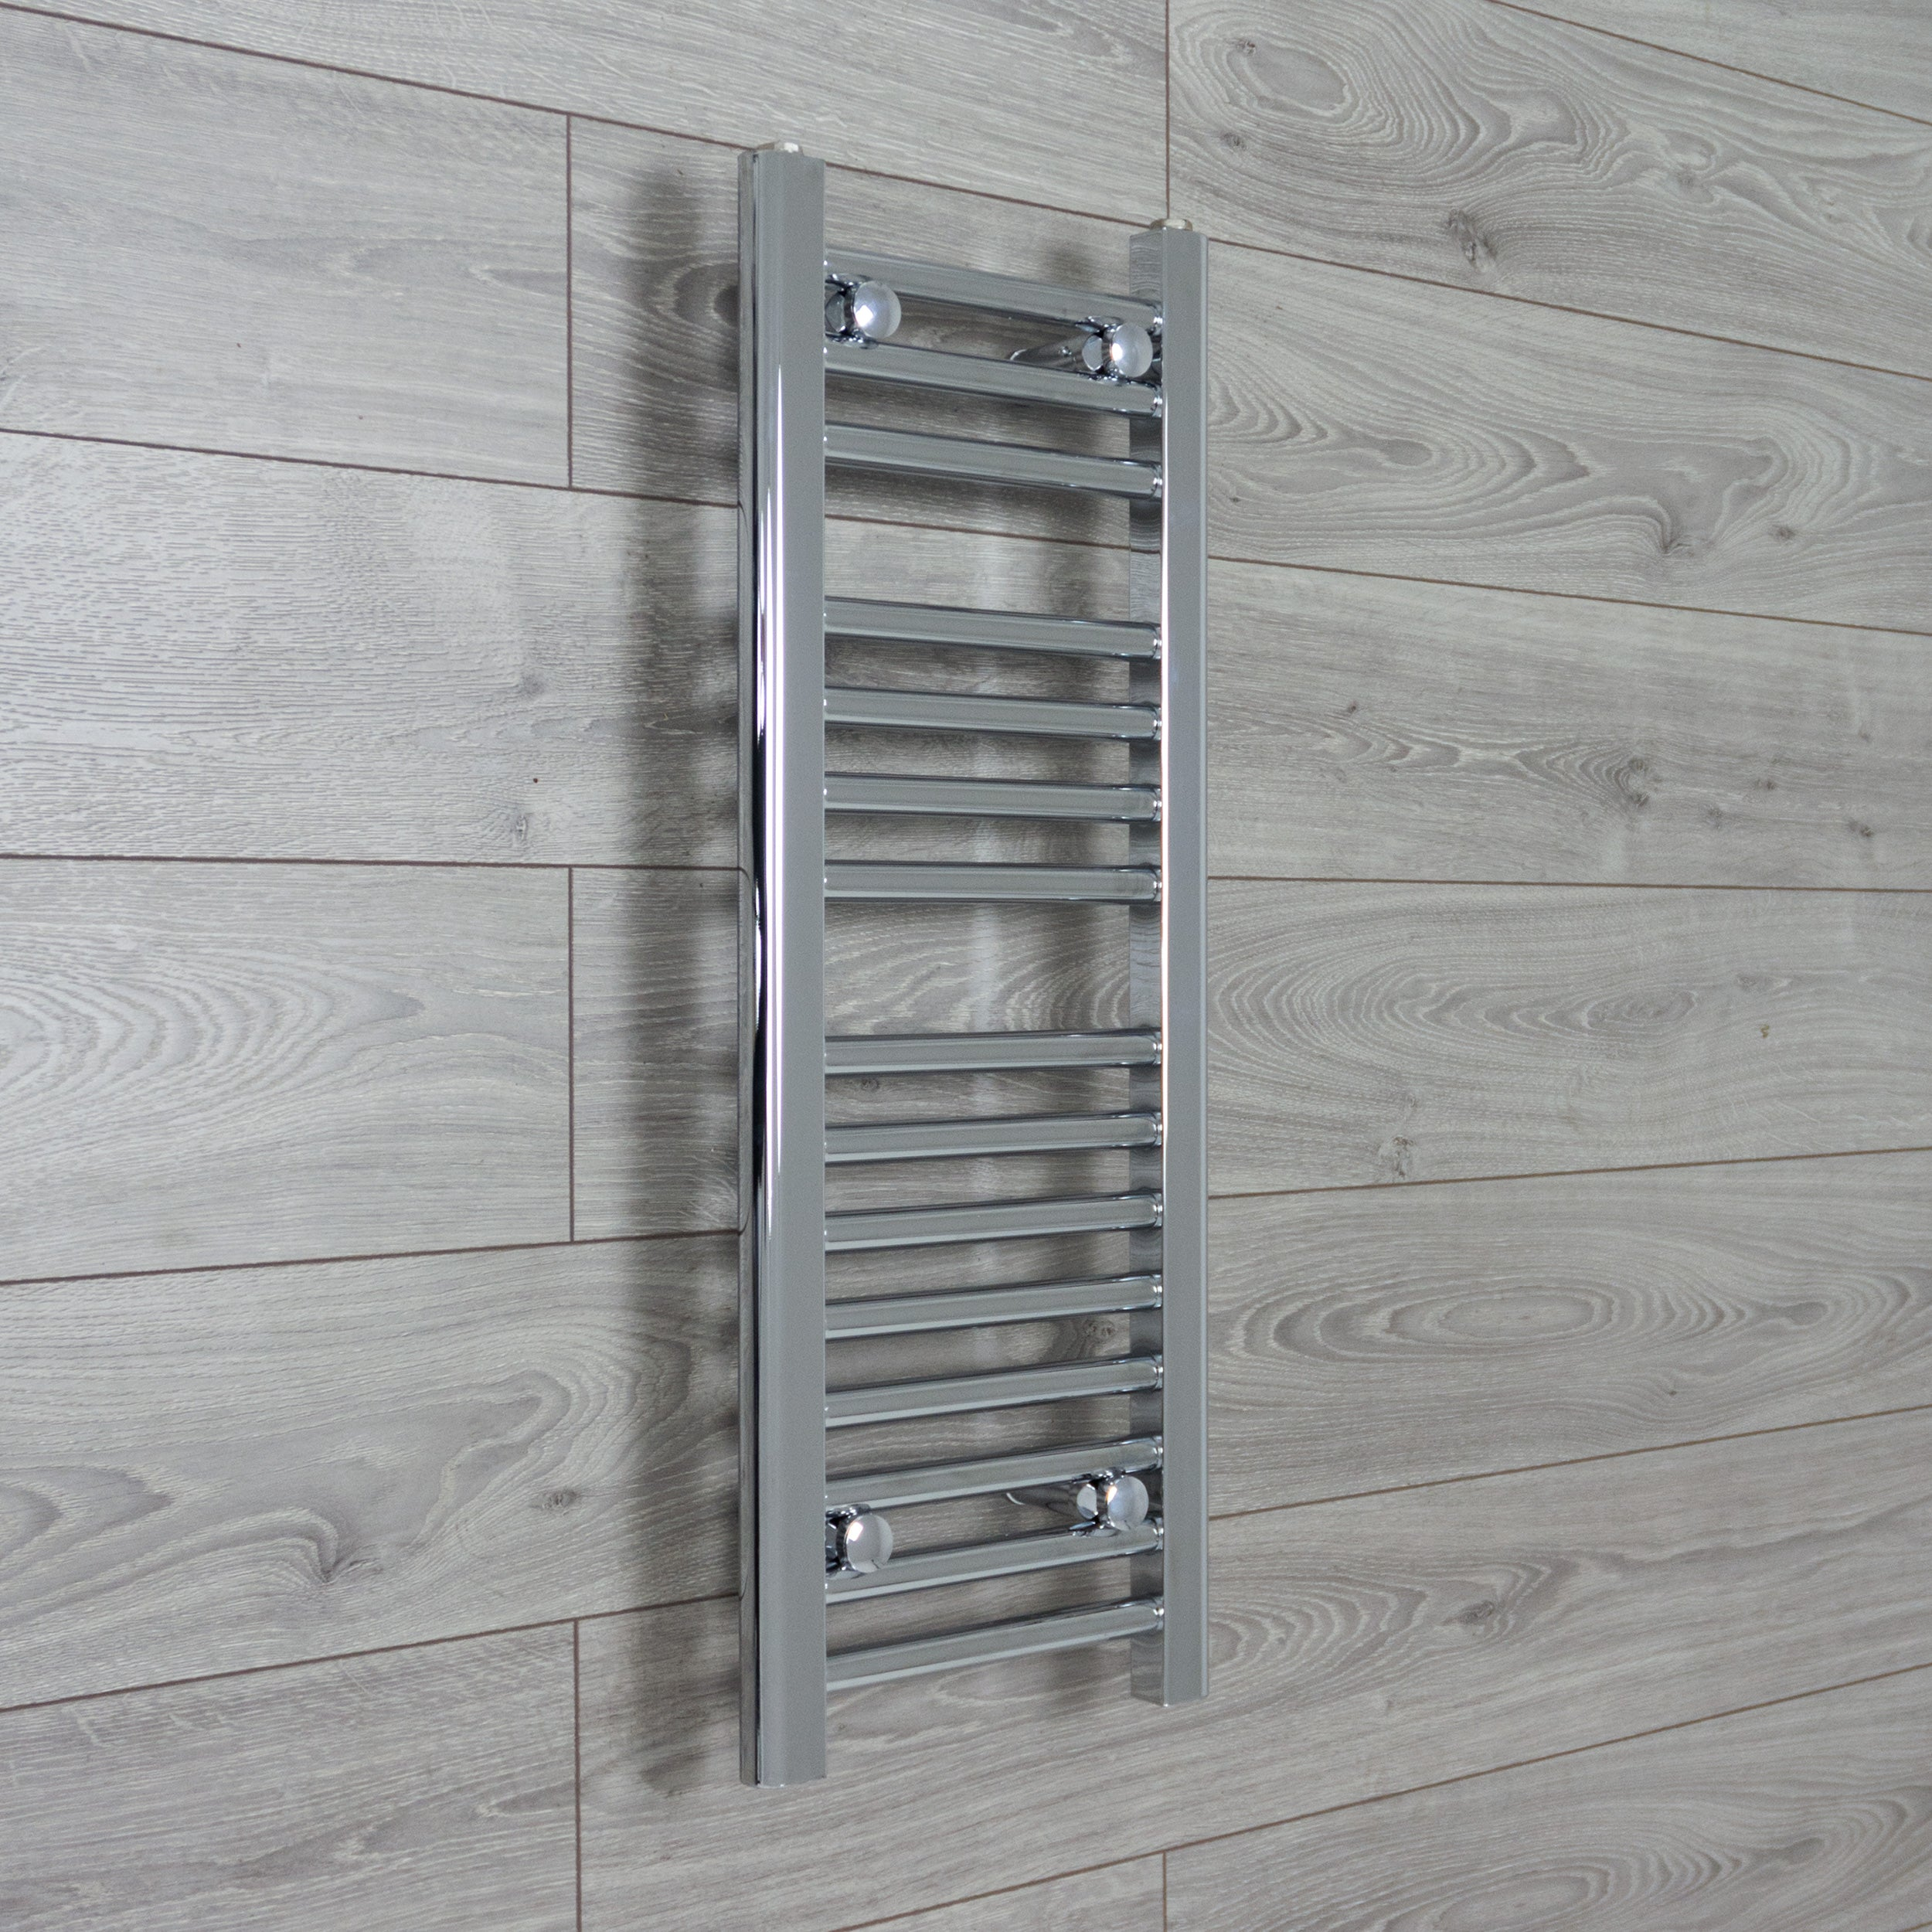 400mm Wide 800mm High Flat Chrome Heated Towel Rail Radiator HTR,Towel Rail Only